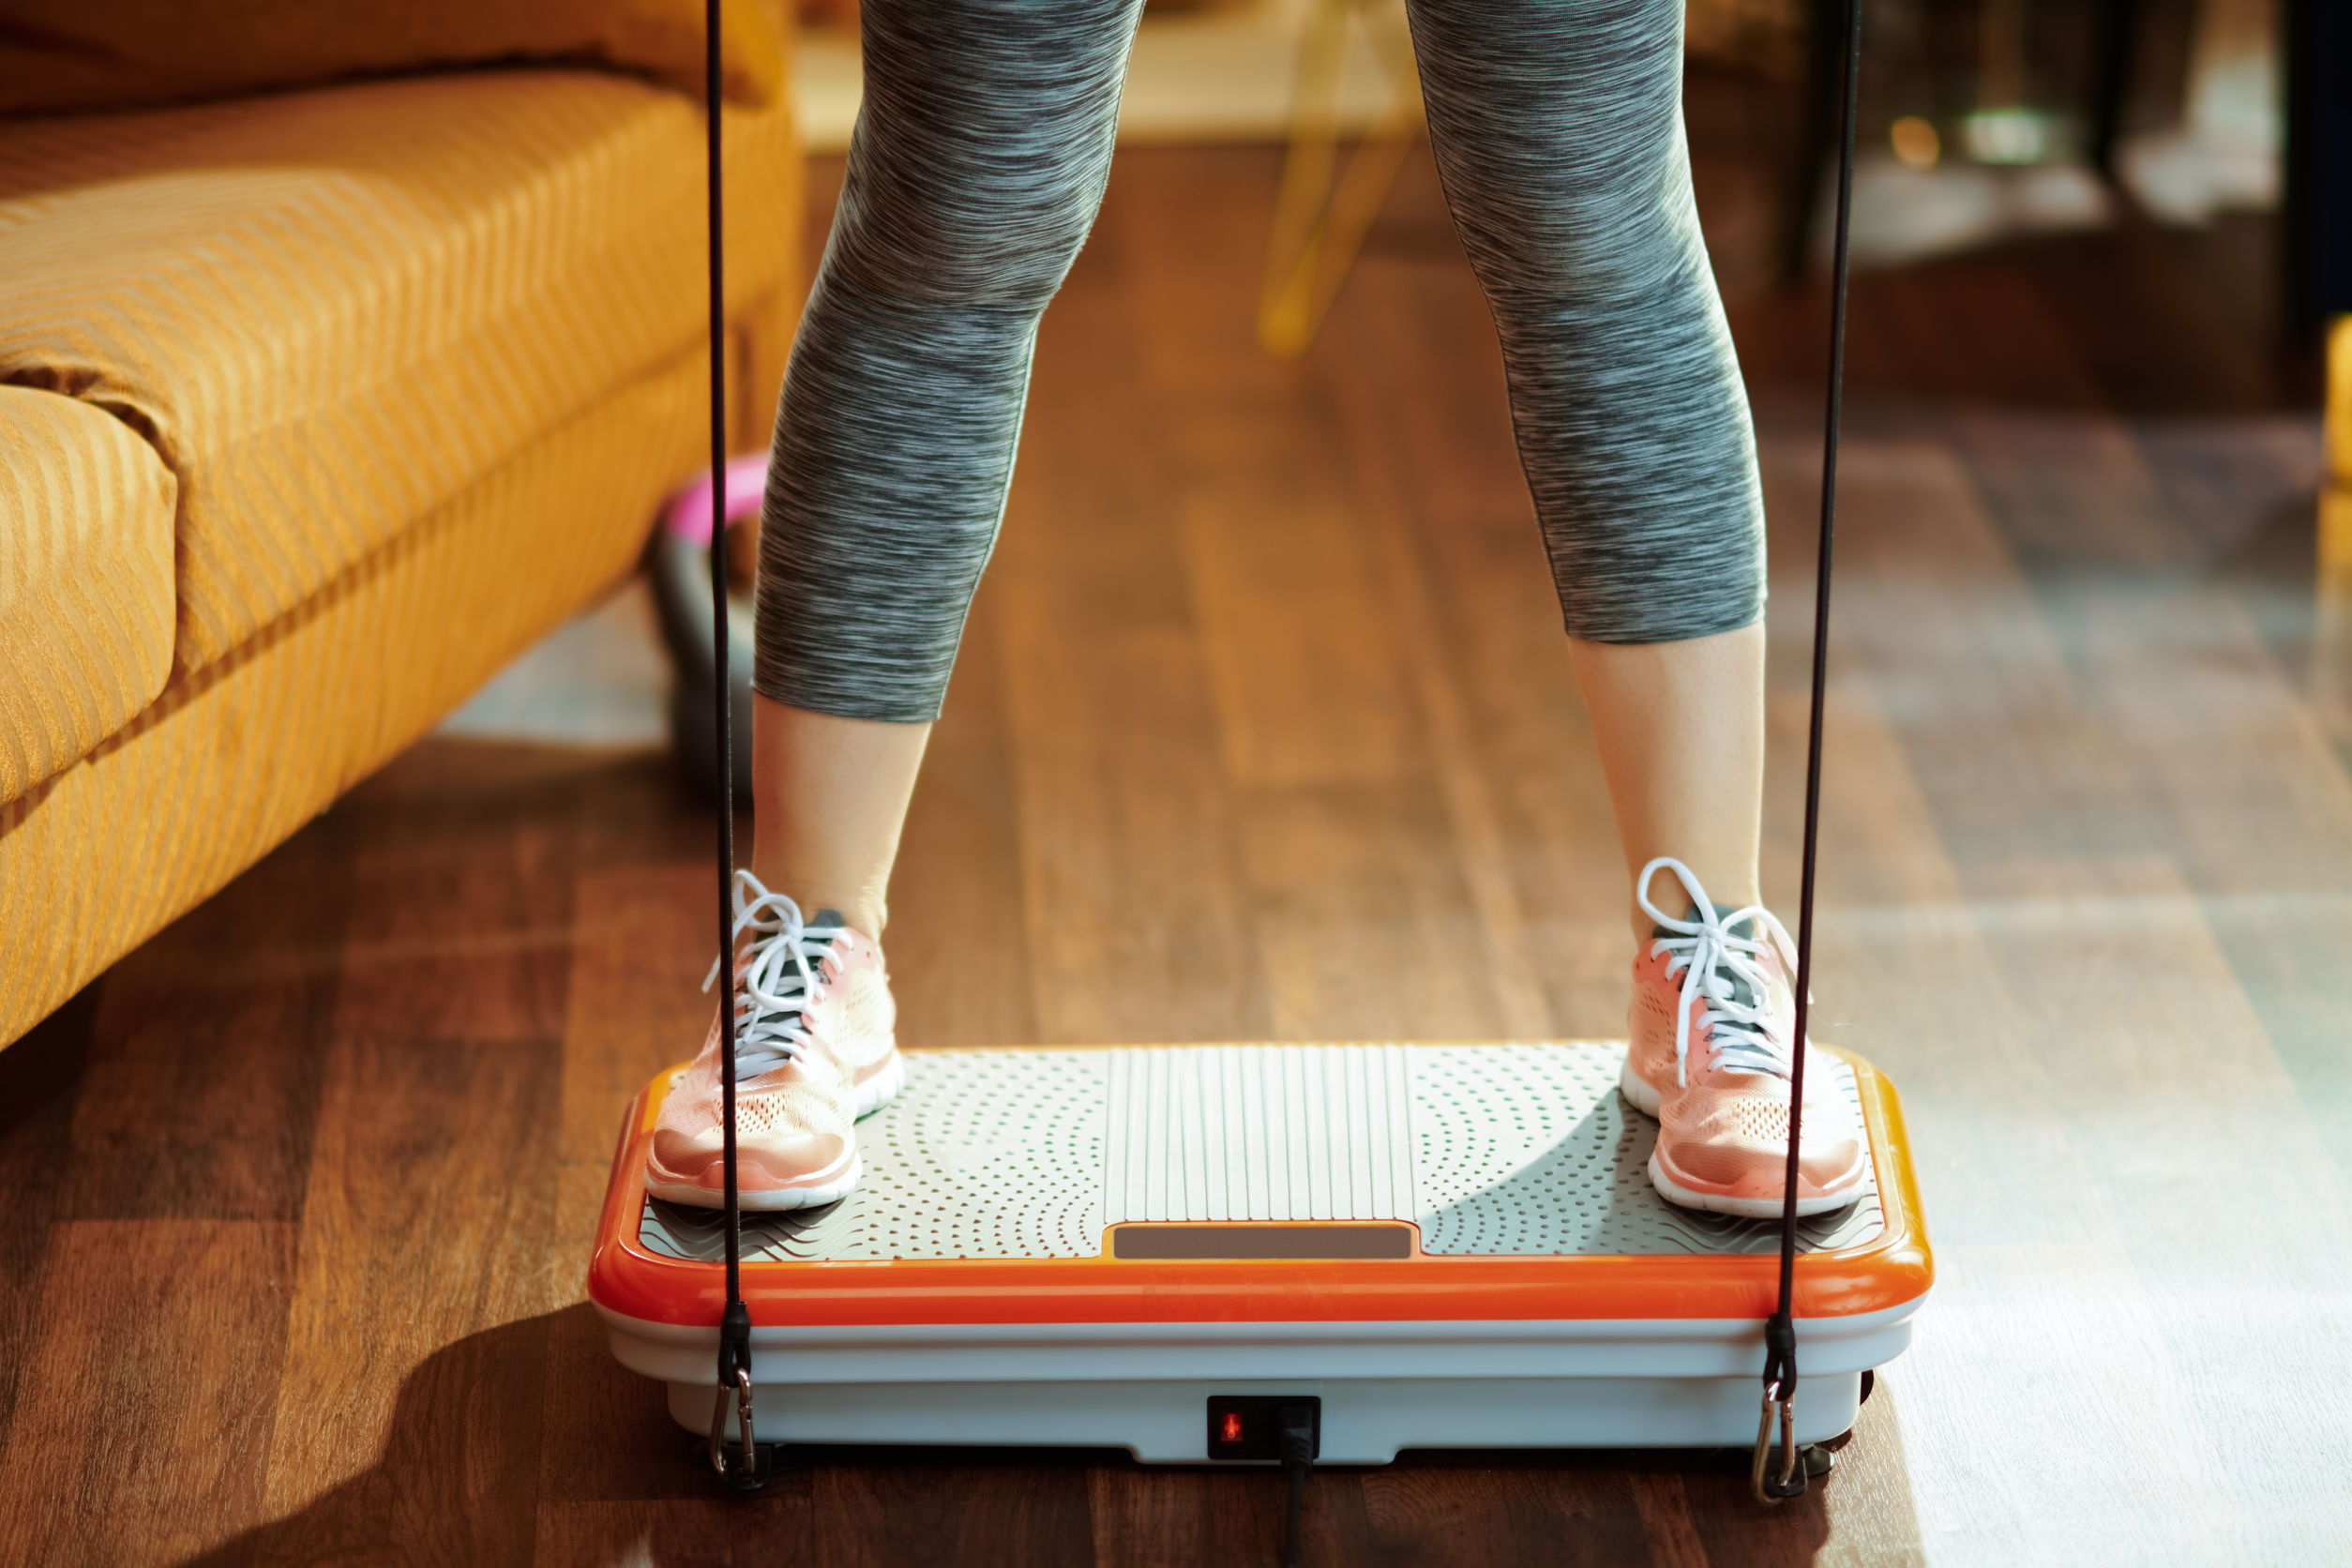 Best Vibration Plate 2021: Shopping Guide & Review